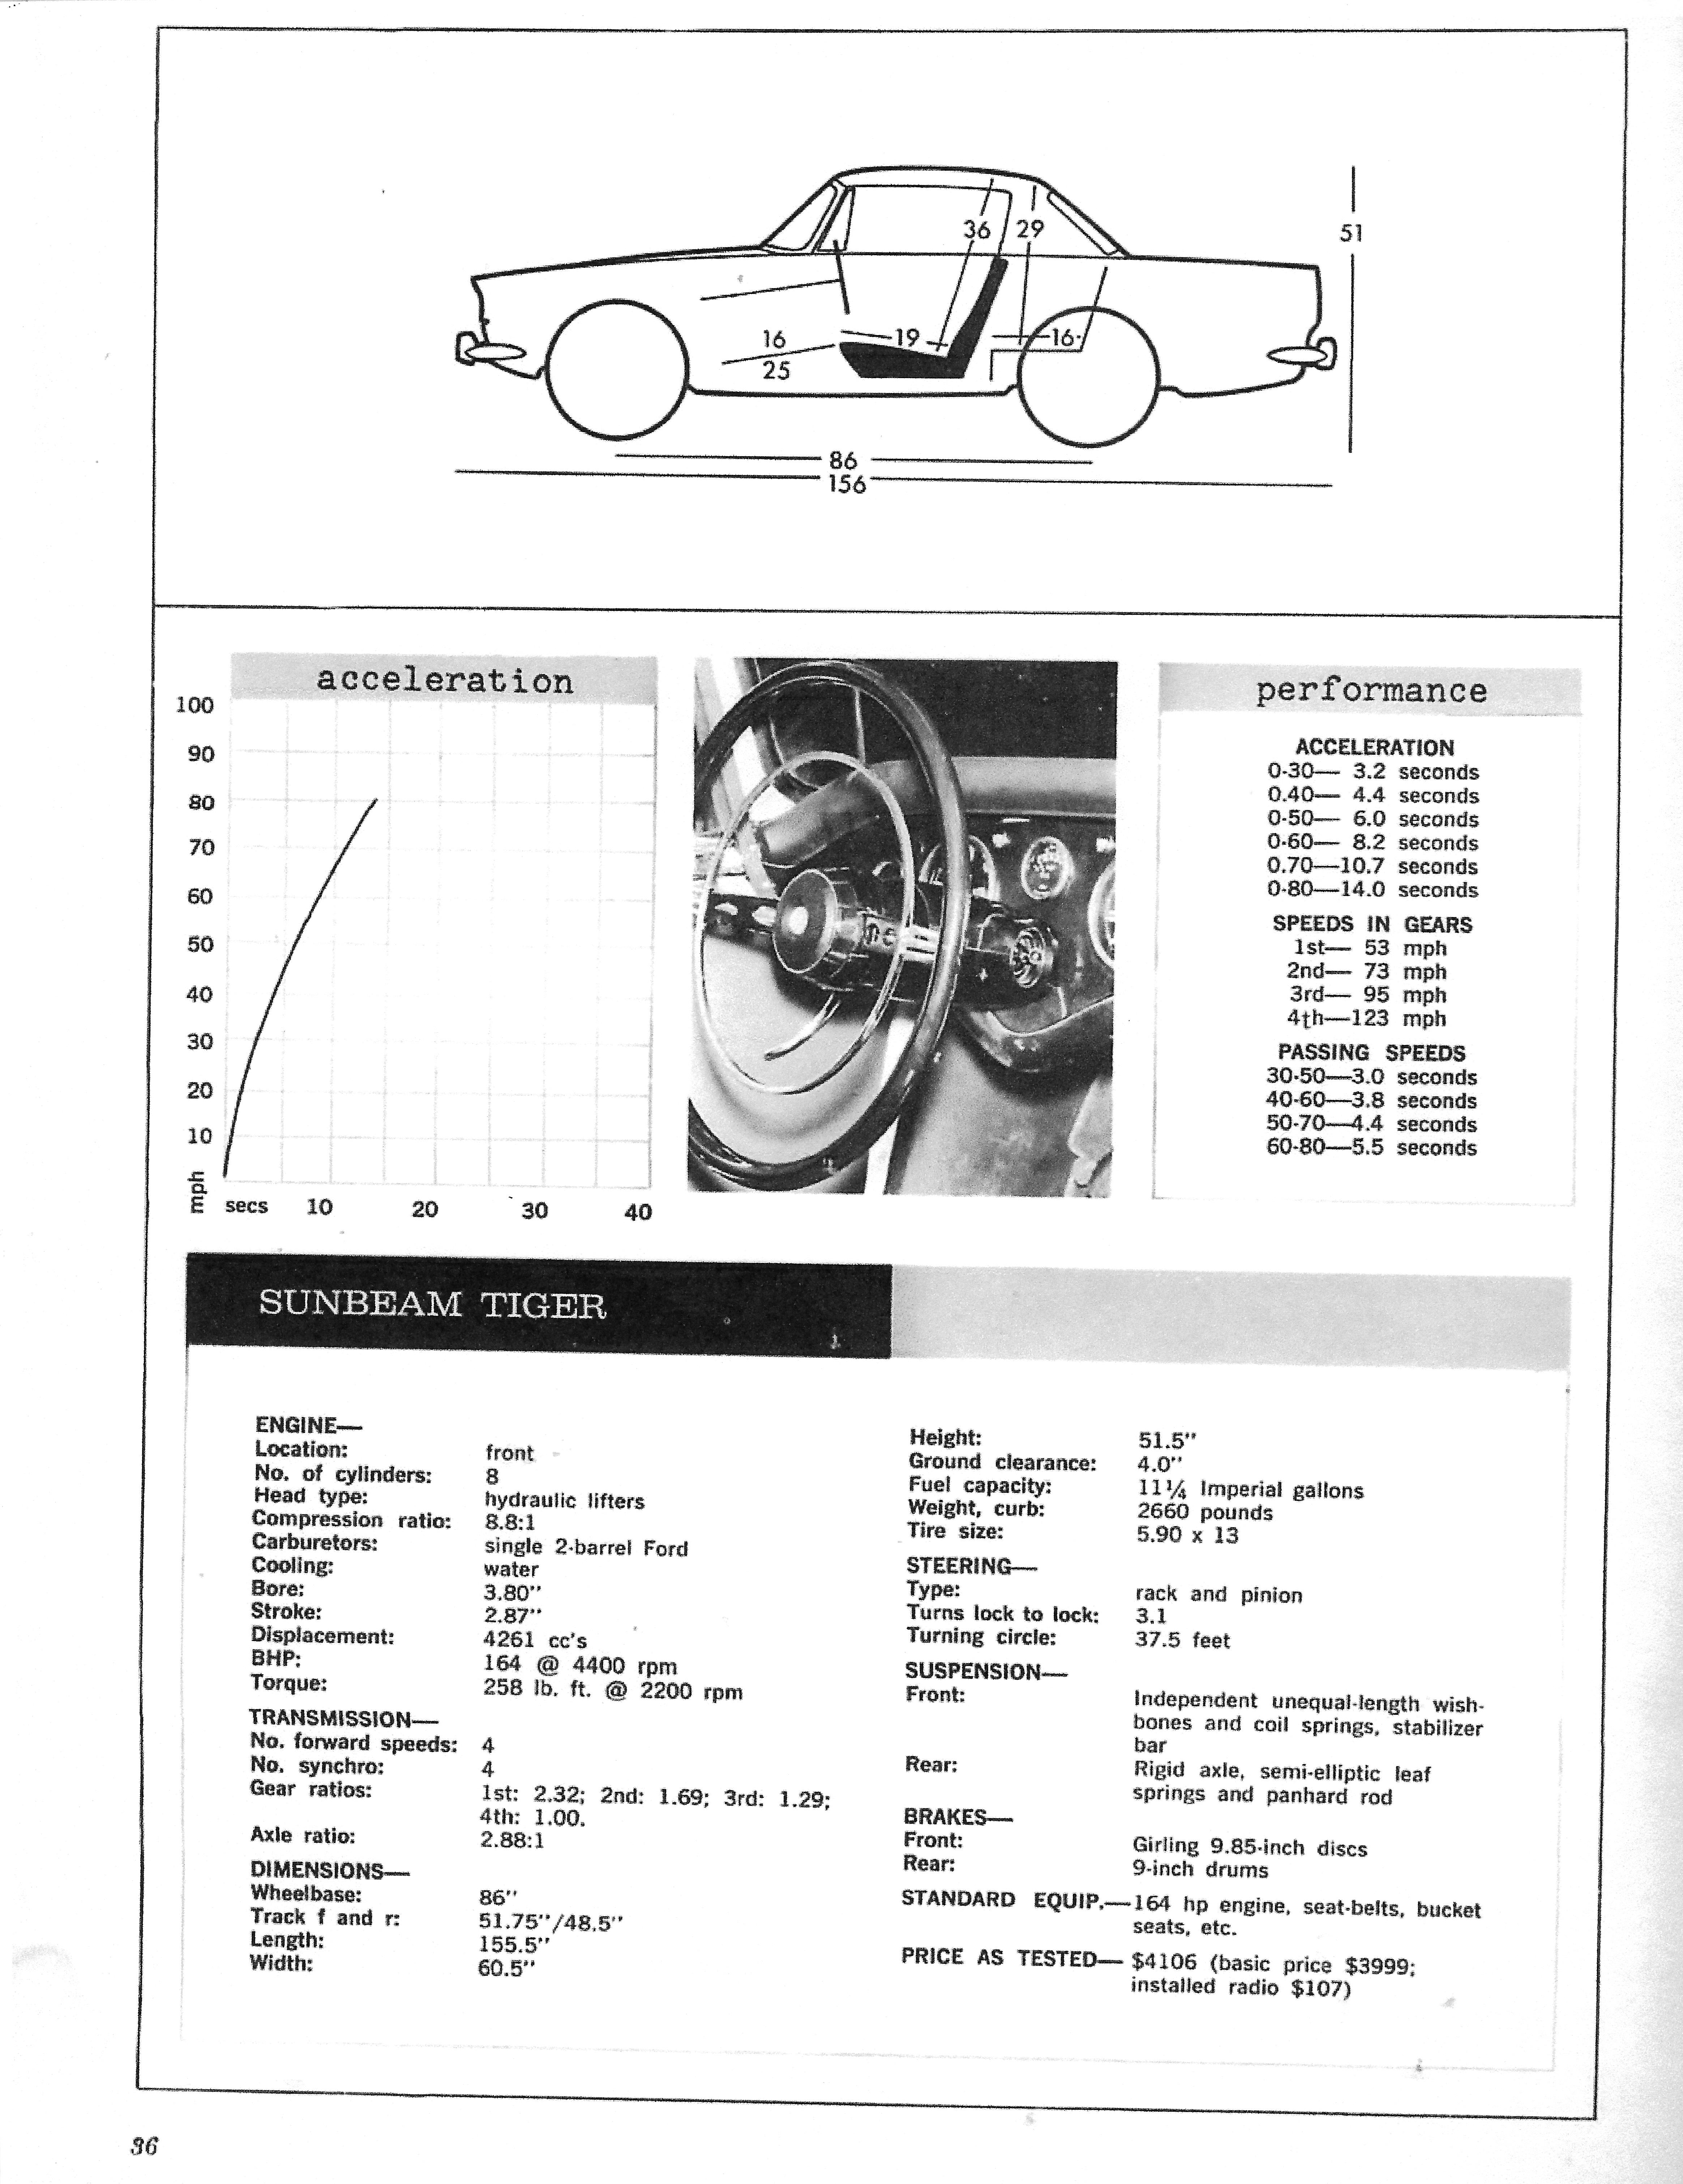 page 39 sunbeam tiger 65 road test